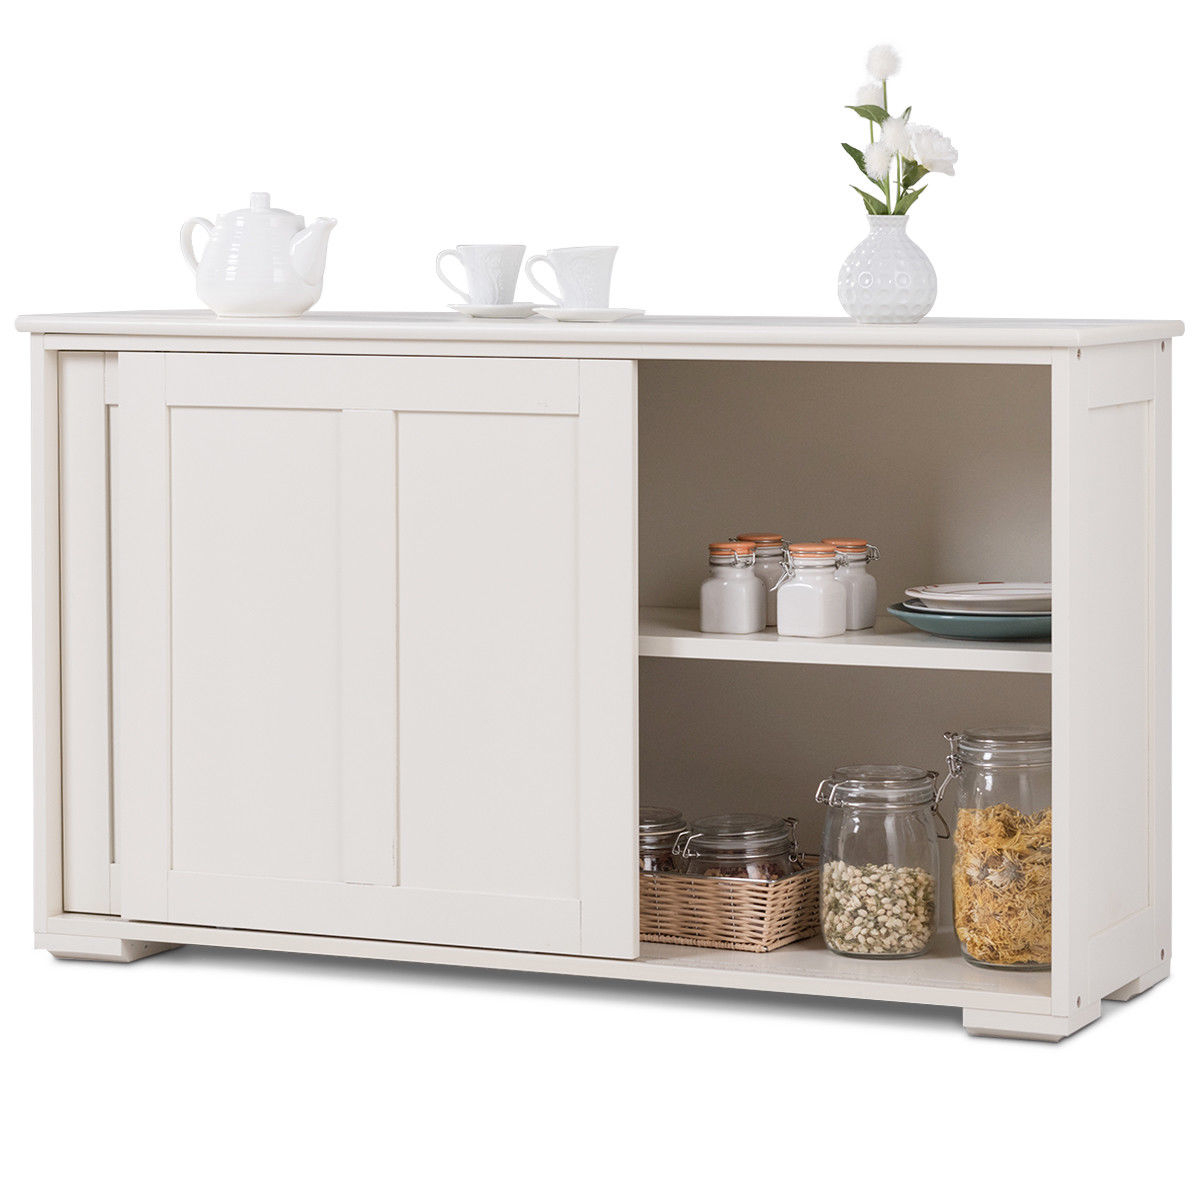 Costway Kitchen Storage Cabinet Sideboard Buffet Cupboard Wood Sliding Door  Pantry – Walmart With Regard To Contemporary Style Wooden Buffets With Two Side Door Storage Cabinets (View 2 of 20)